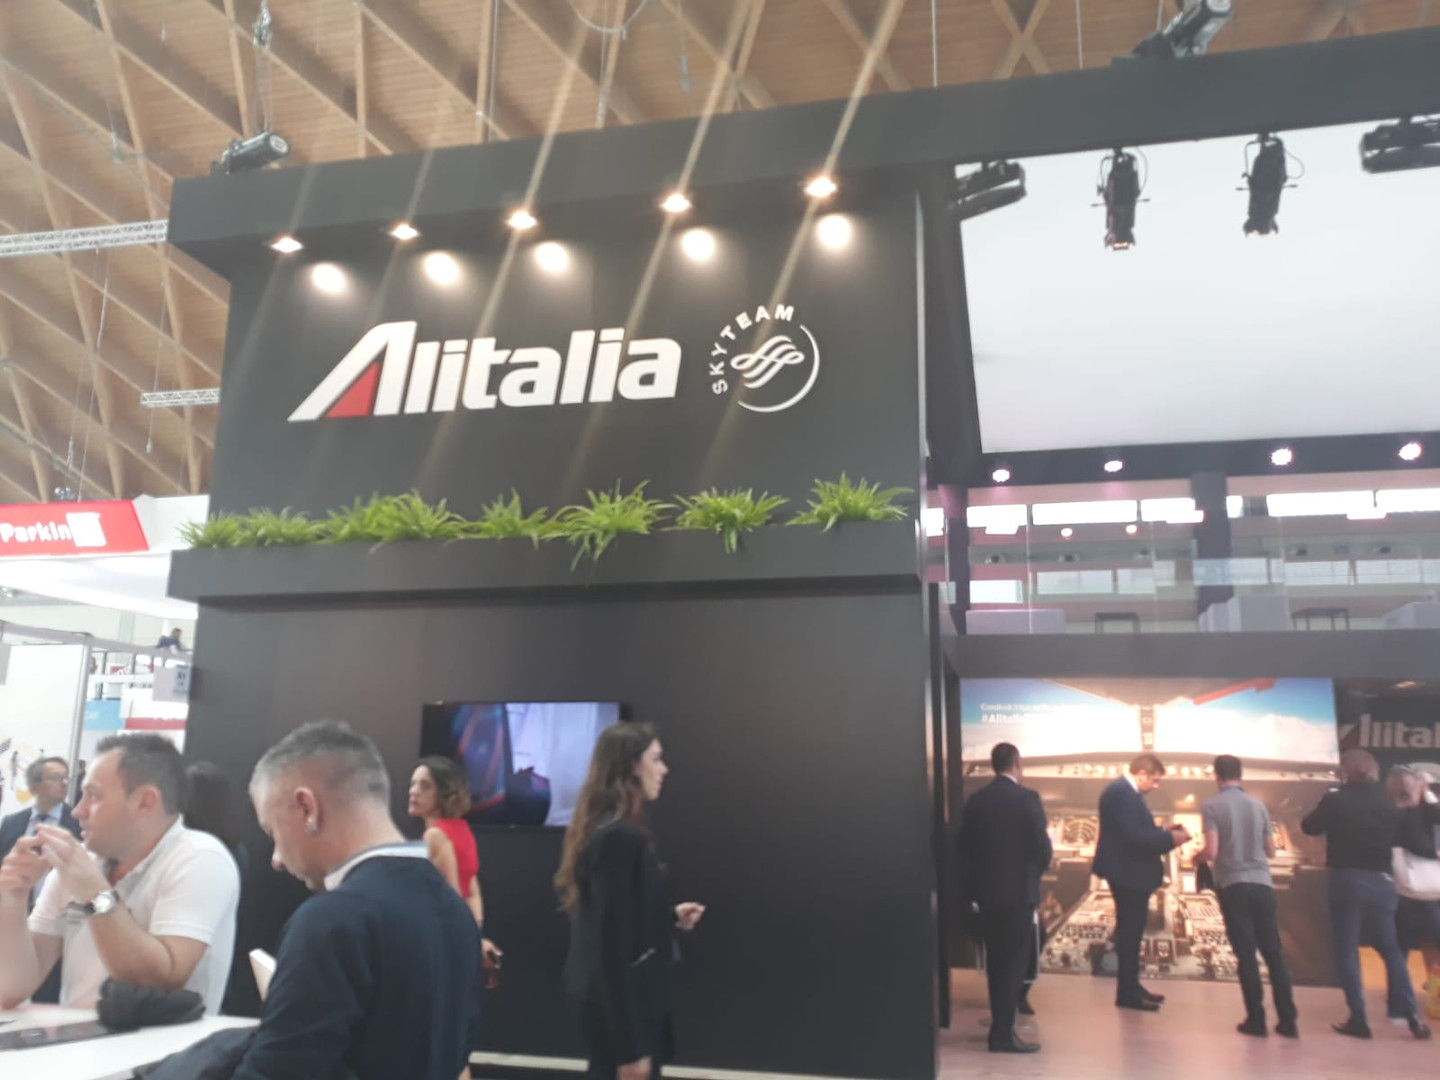 Alitalia in fiera_